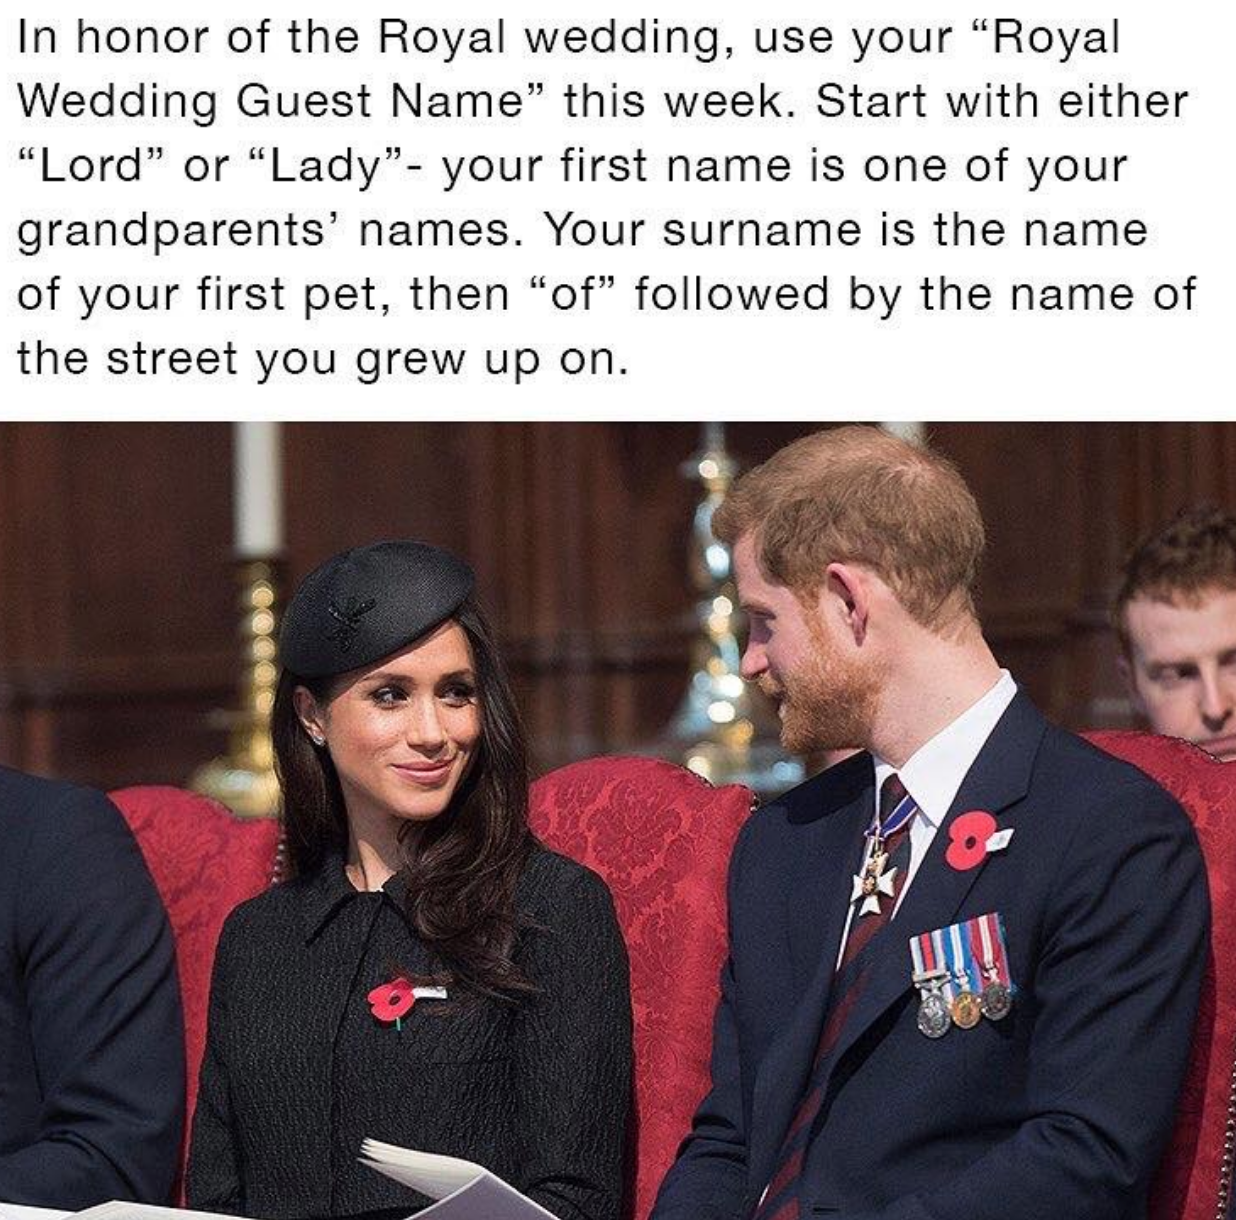 Taking Royal Wedding Facebook Quizzes Could Be a Security Risk